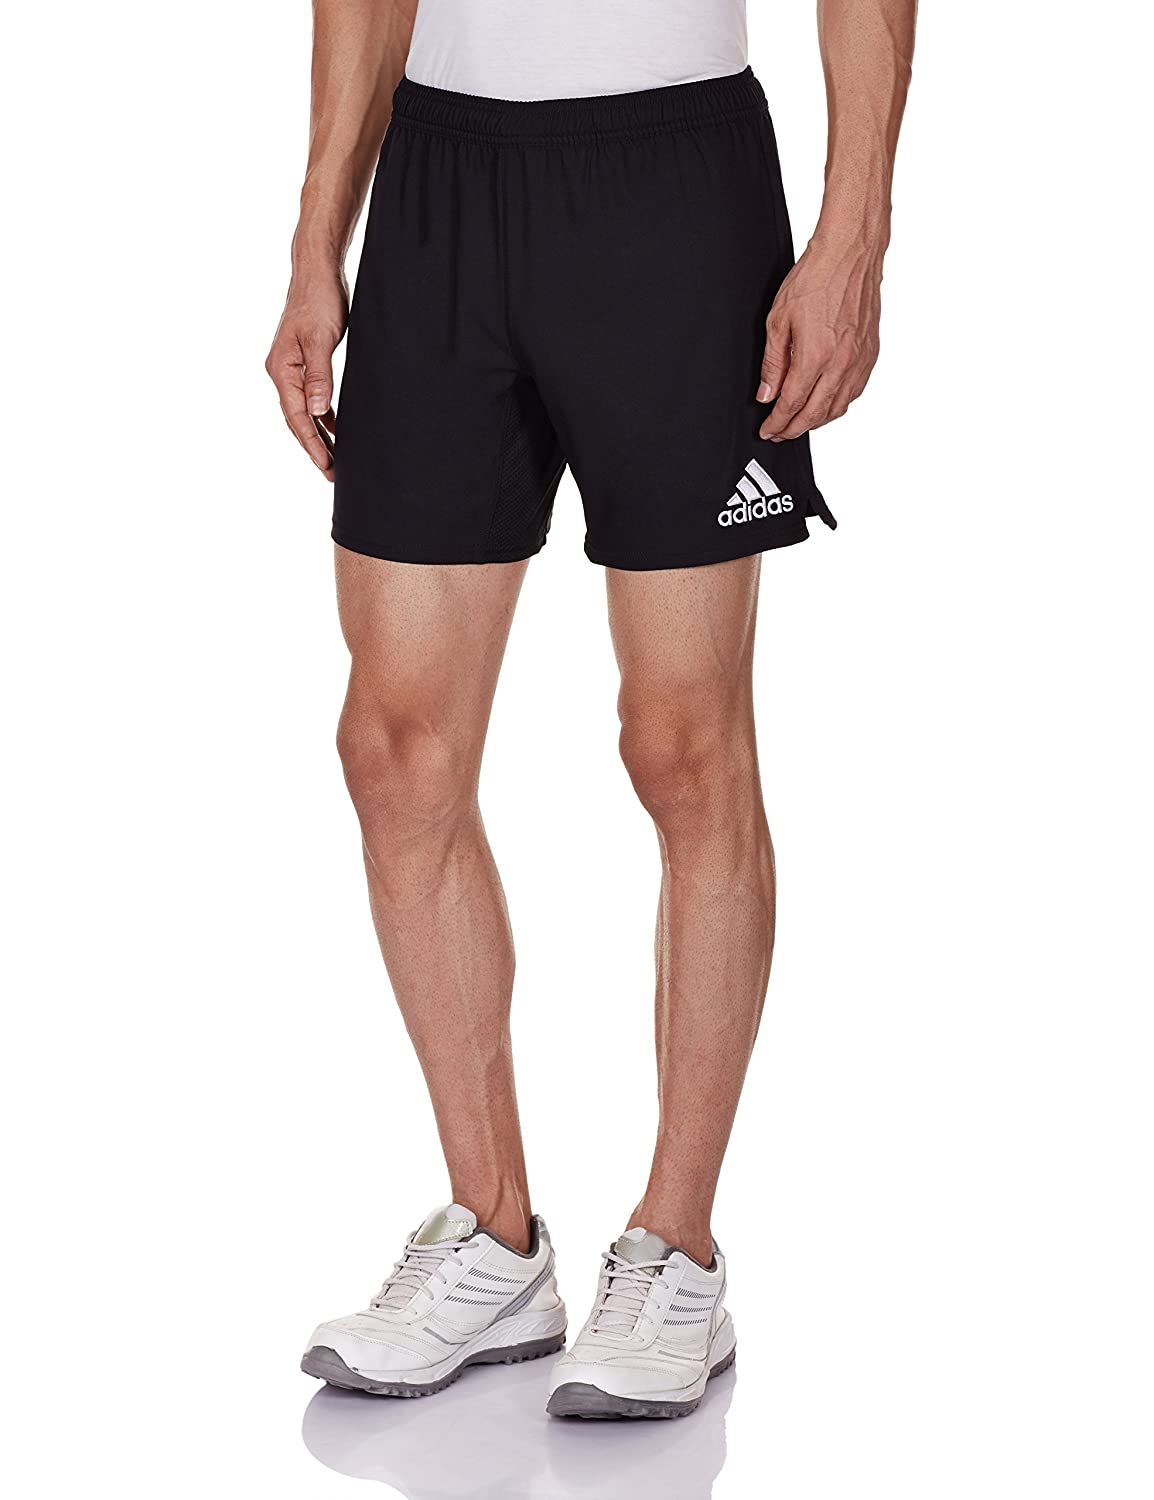 new styles 977fa d77c2 Adidas 3s Climacool Men's Rugby Training Shorts